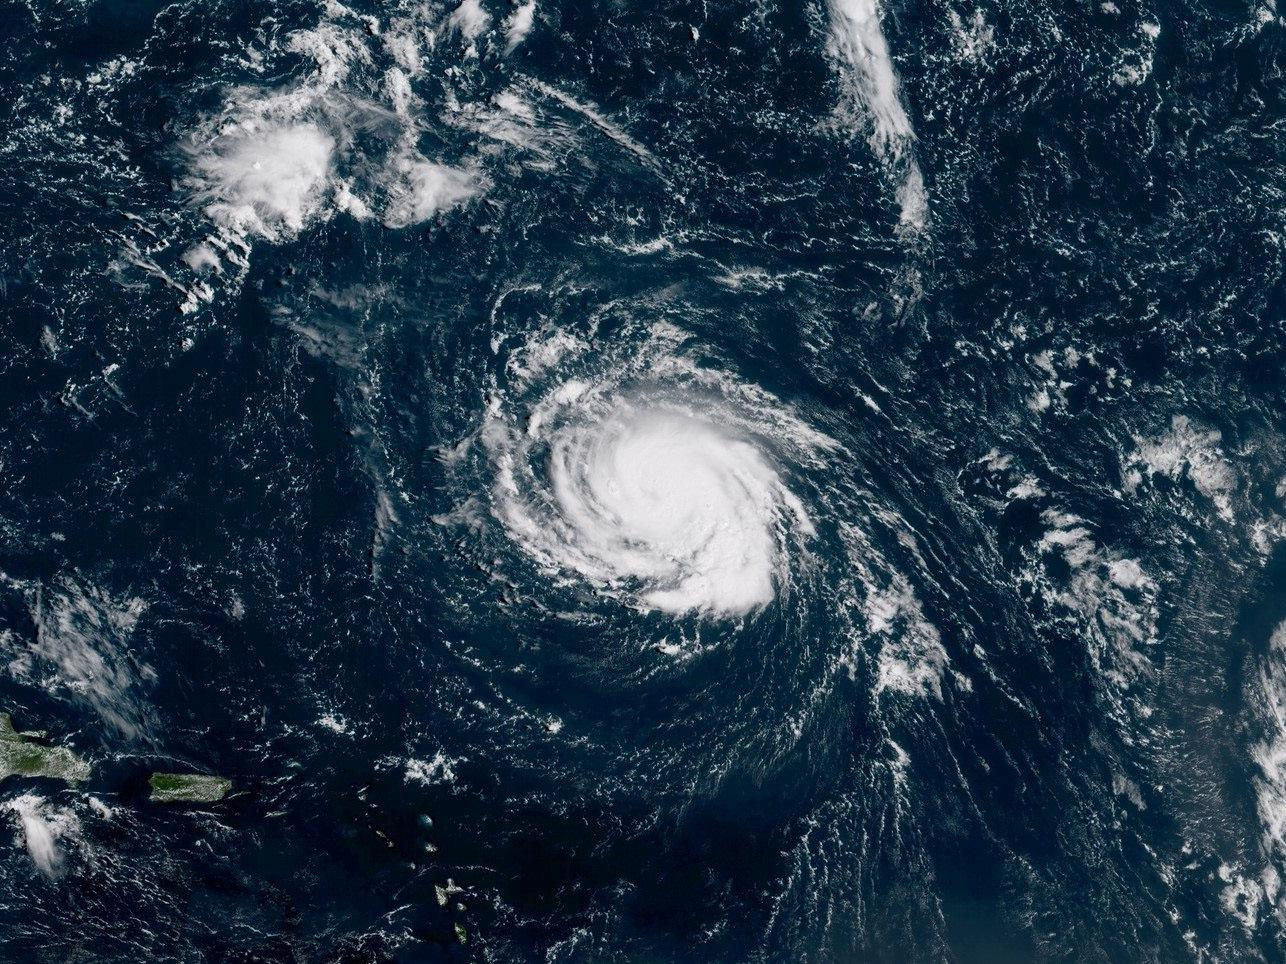 Hurricane Florence: US East Coast to endure 'life-threatening impact' after landfall from major storm, say experts